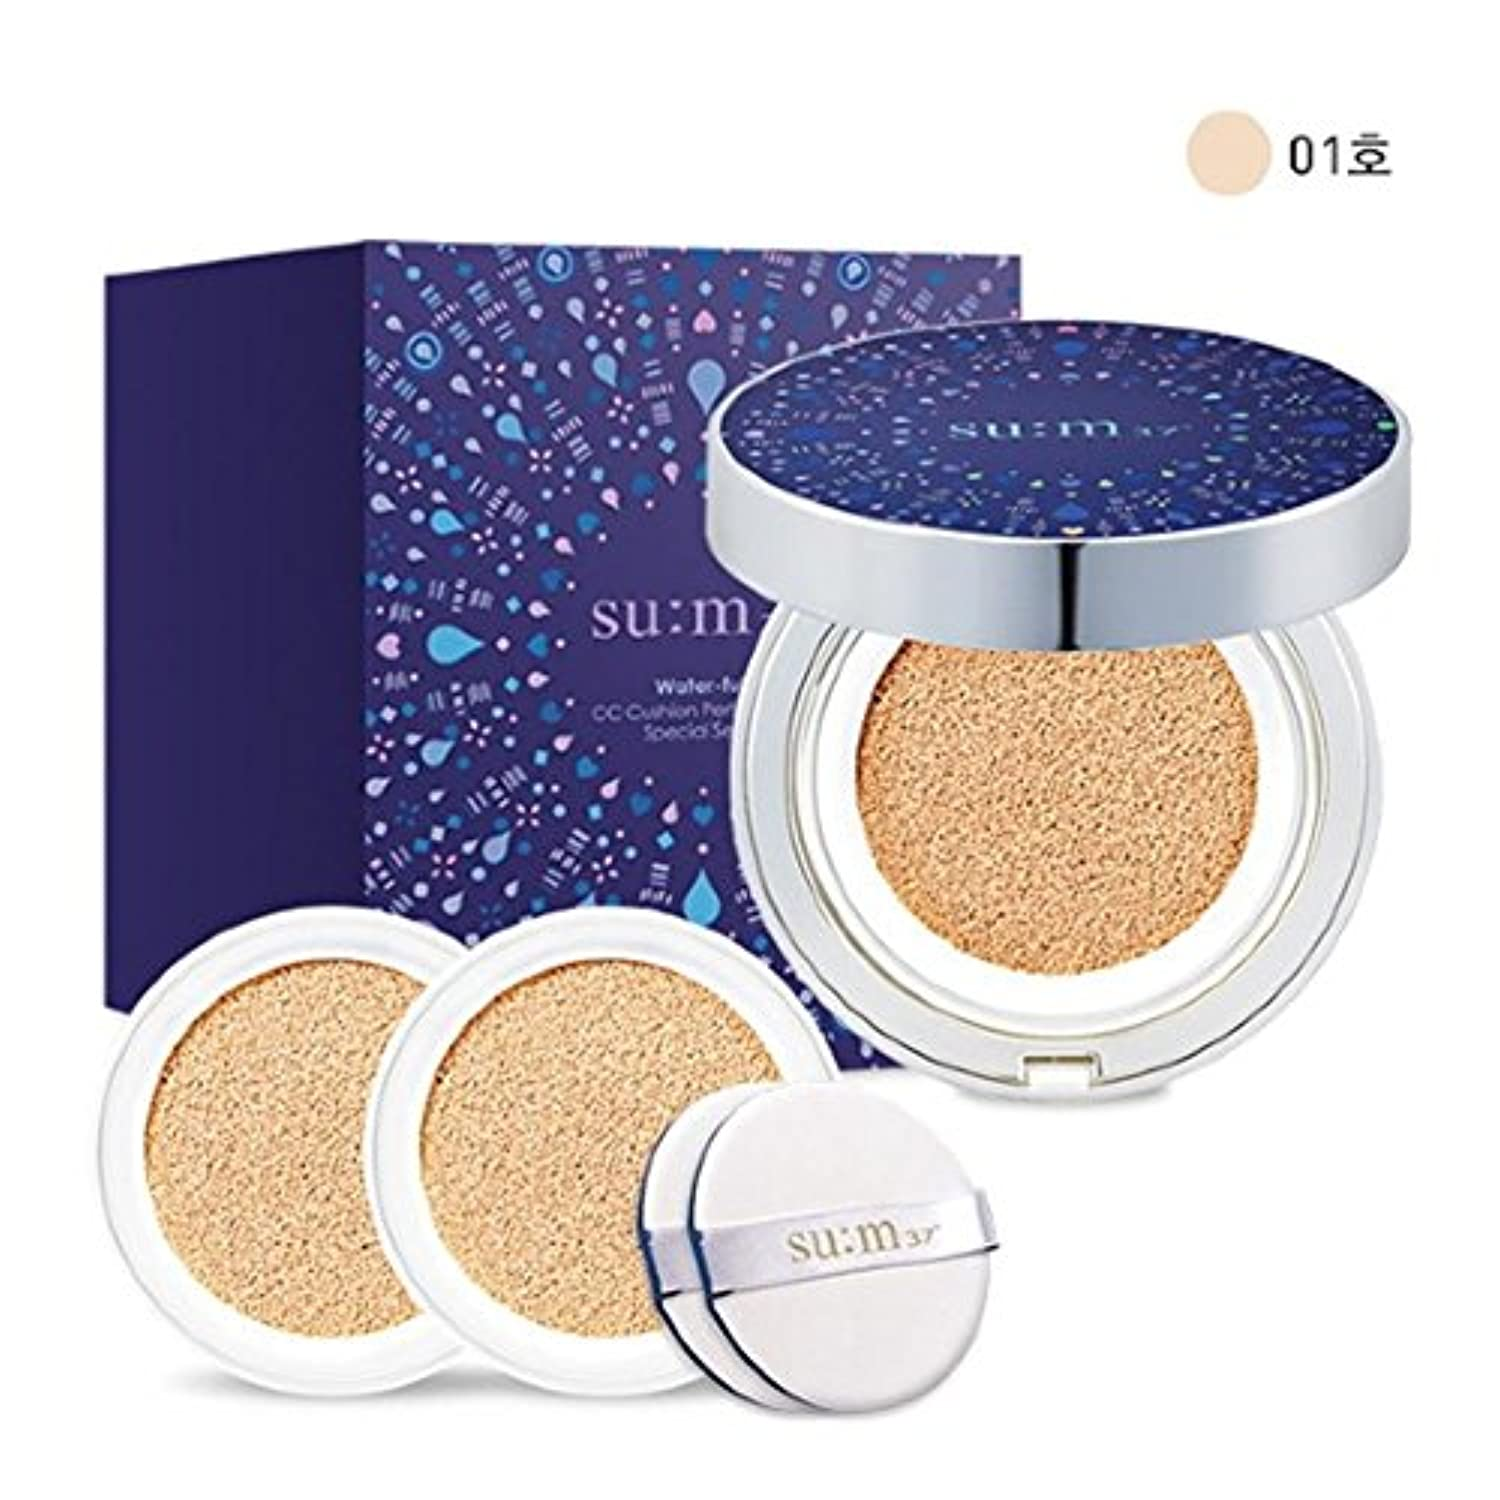 [su:m37/スム37°]Water Full CC Cushion Limited Edition Perfect finish No. 1 (SPF50+/ PA+++) / 水プール CCクッションパーフェクトフィニッシュ...